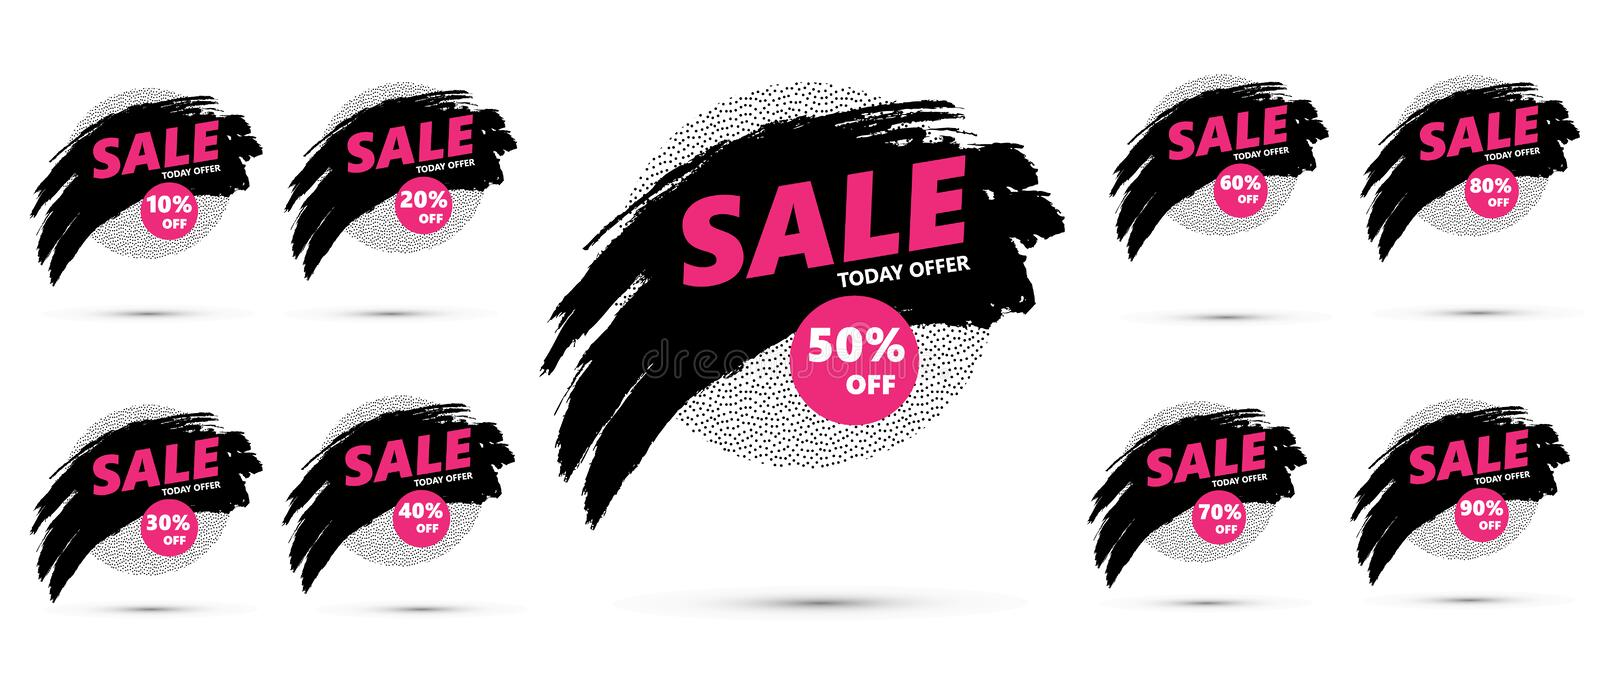 SALE today special offer. Sale tags set vector badges template, up to 10, 20, 30, 40, 50, 60, 70, 80, 90 percent off. SALE symbols vector illustration